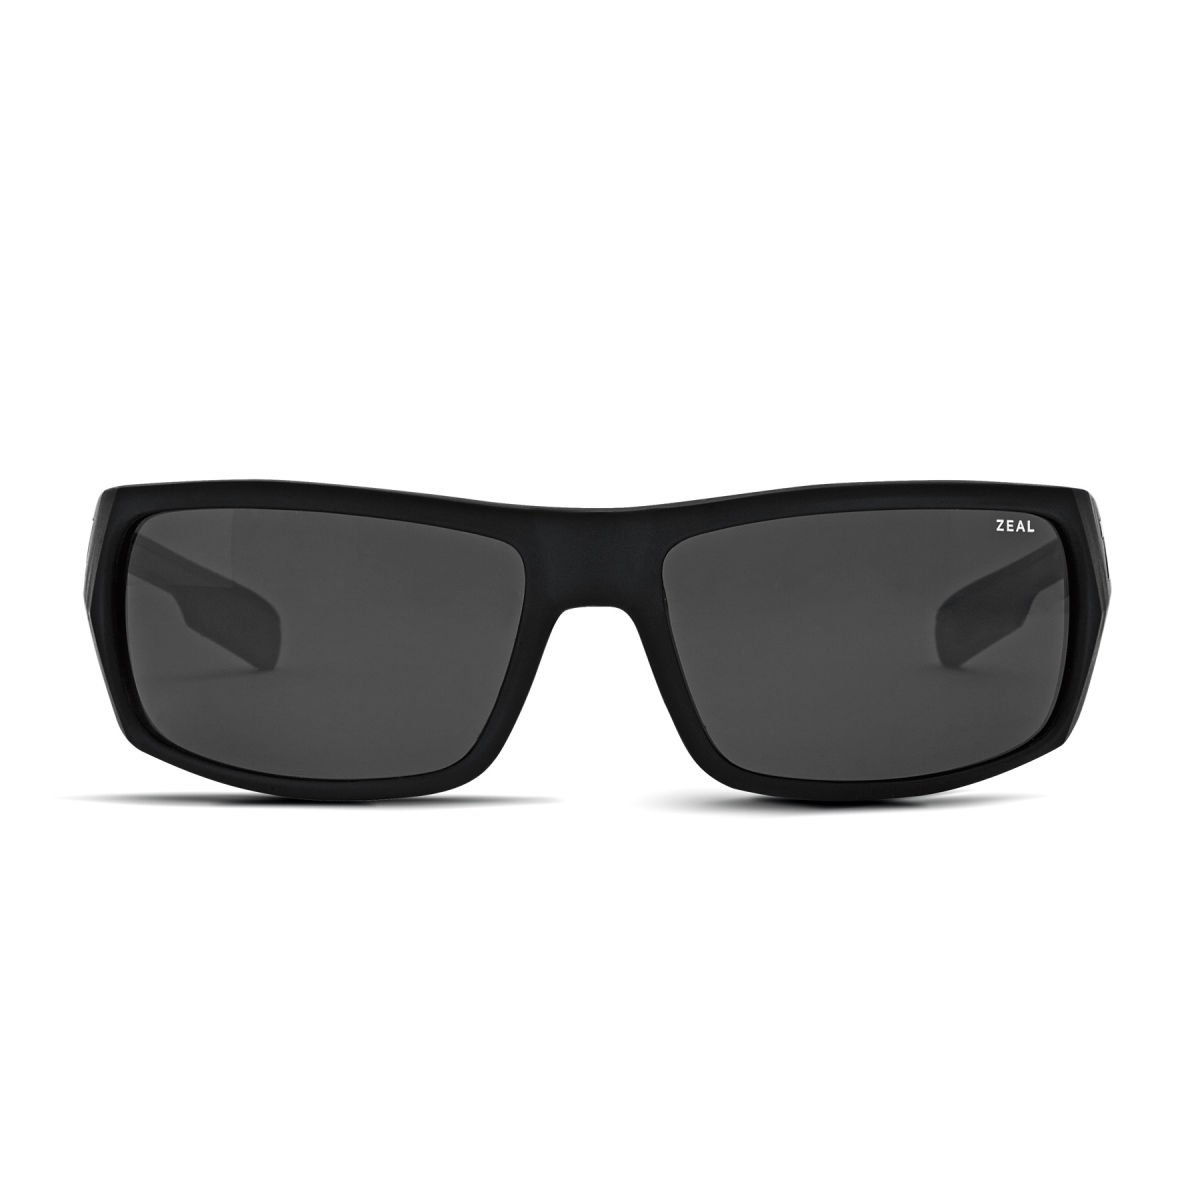 92ab05cf042 Amazon.com  Zeal Optics Unisex Snapshot Faded Fatigue W Polarized Dark Grey  Lens One Size  Clothing